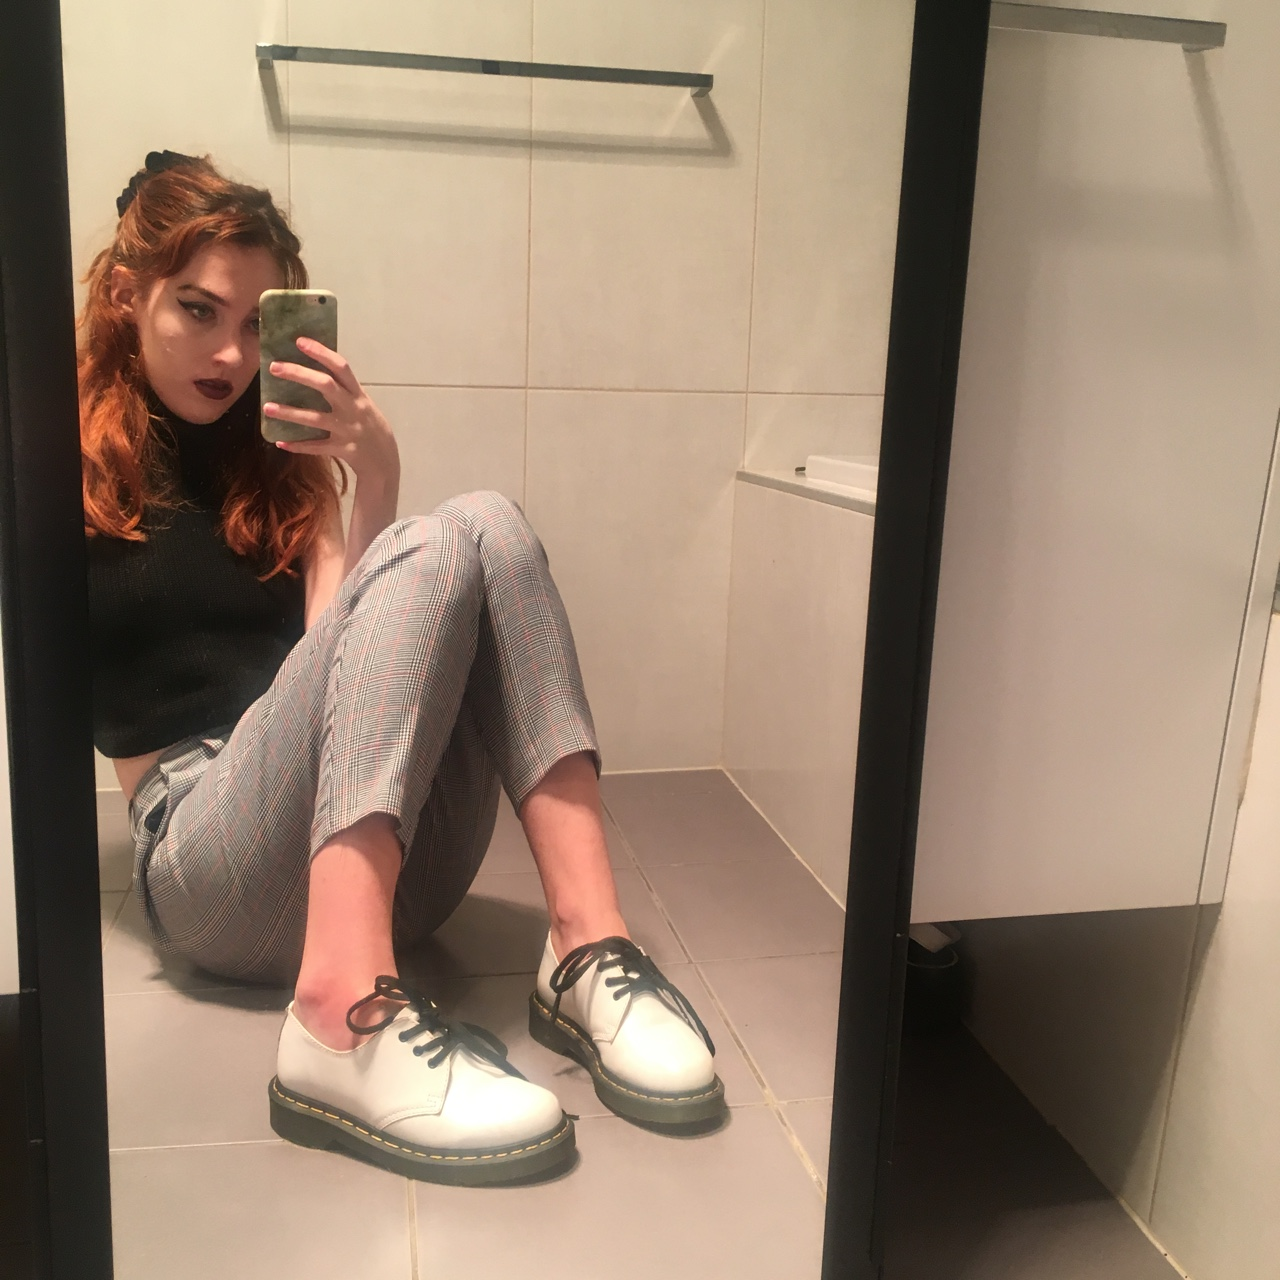 White low top Dr Marten style shoes